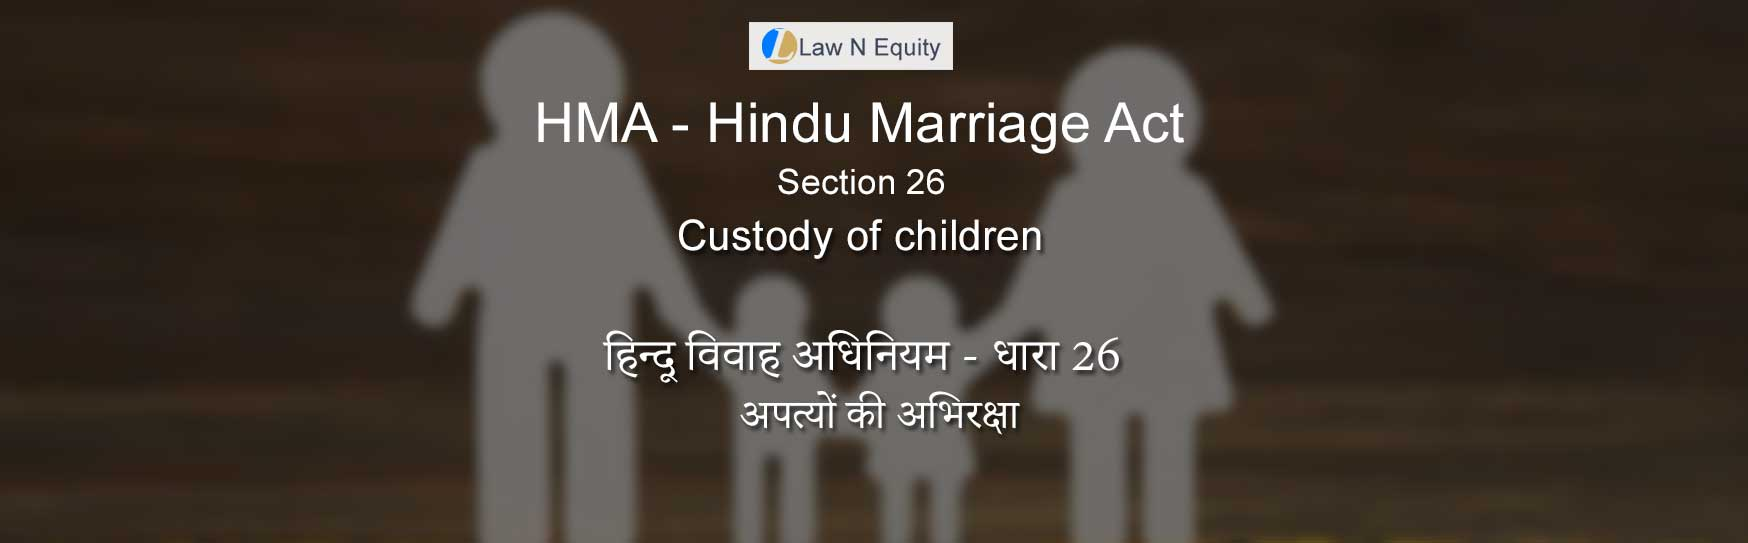 Hindu Marriage Act(HMA) Section 26